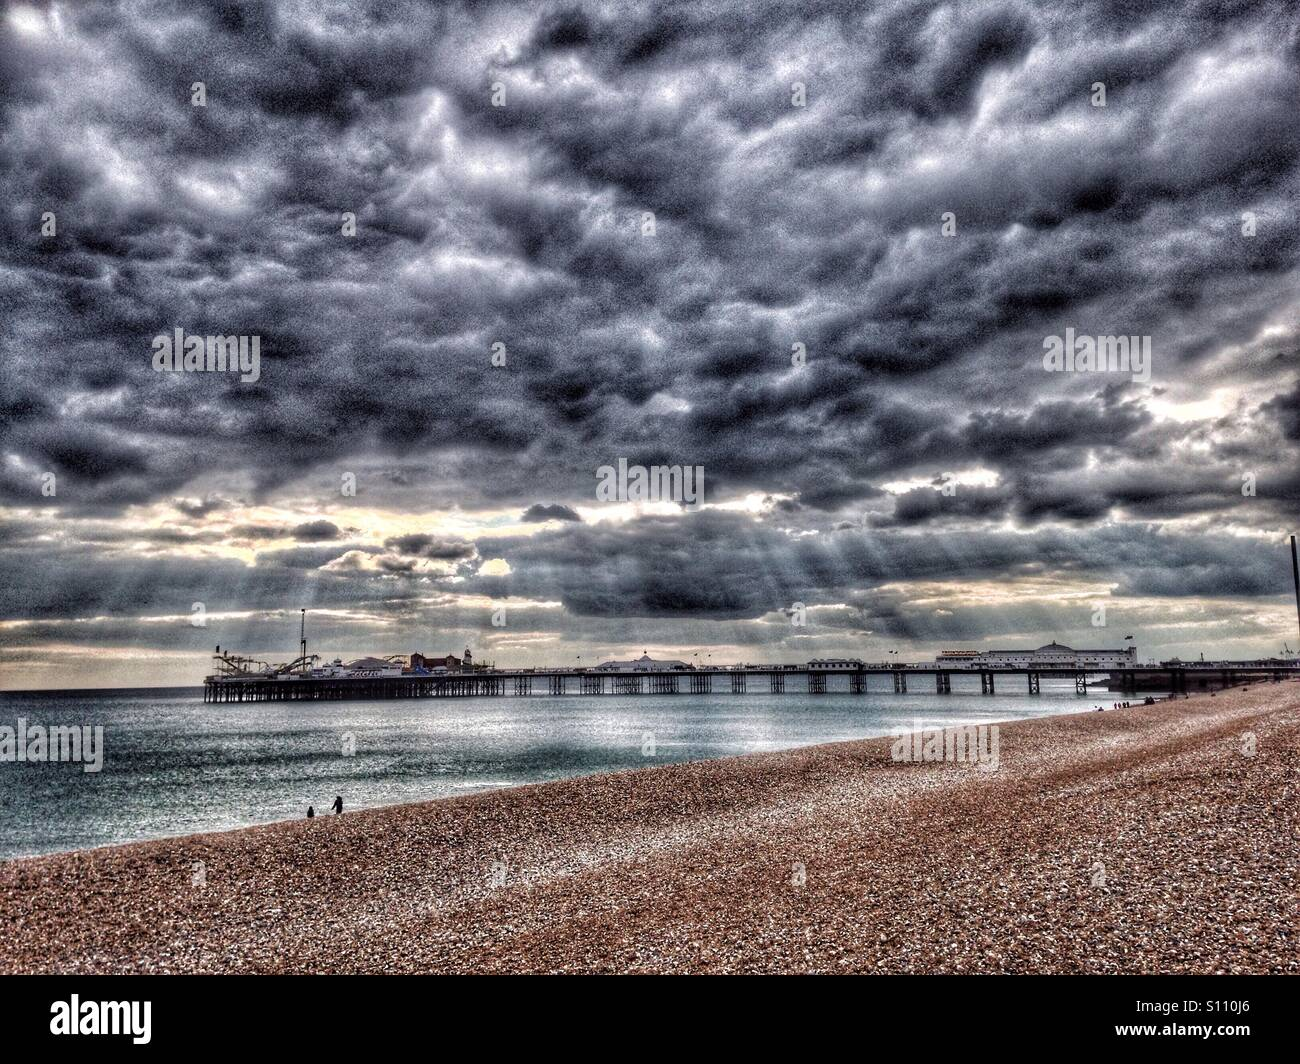 La plage de Brighton et de la jetée, Sussex, UK Photo Stock